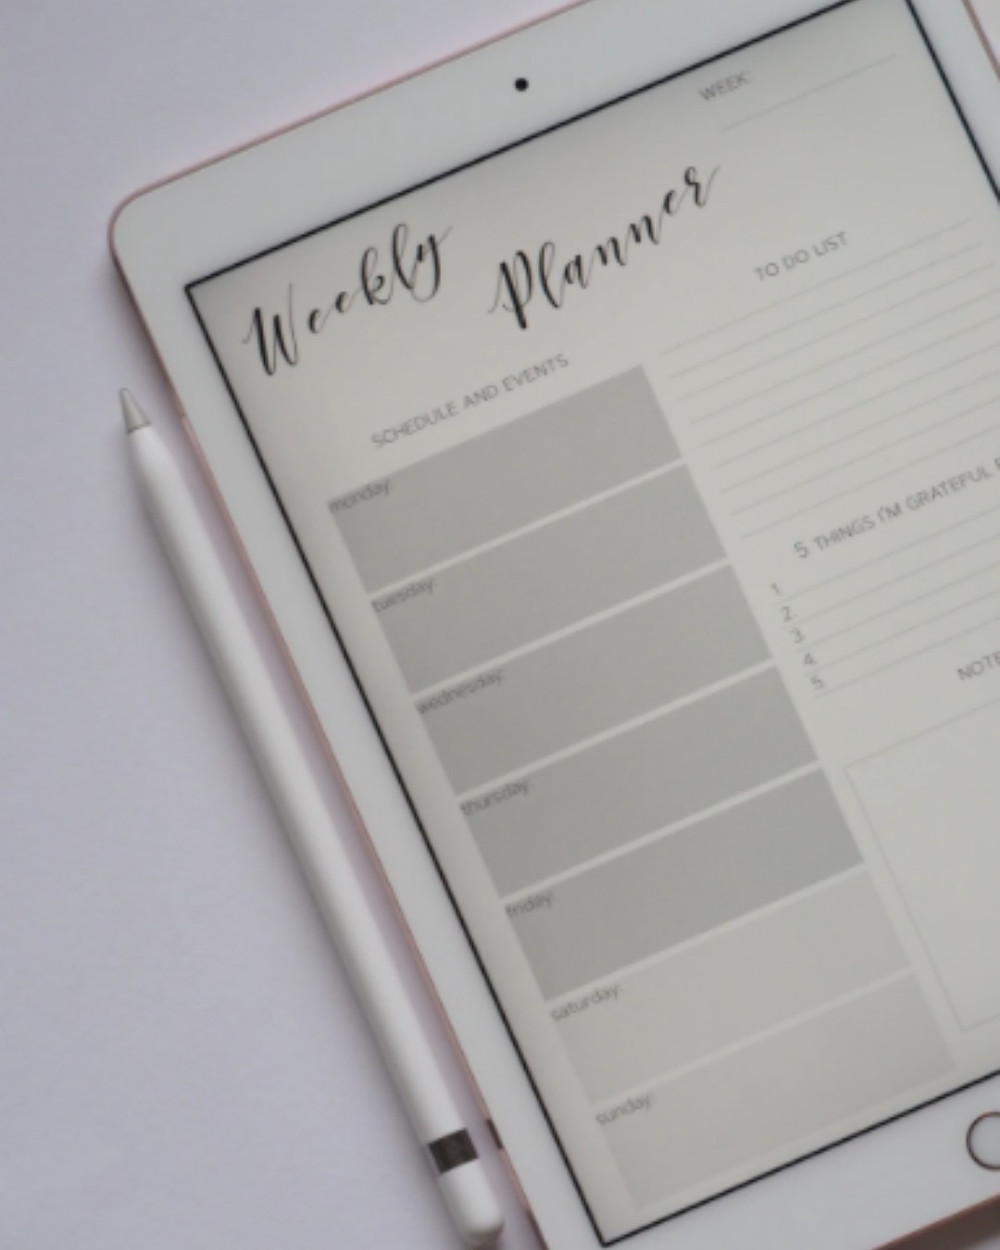 Picture of an ipad with an apple pencil lying beside it. An empty weekly planner page is open on the ipad.